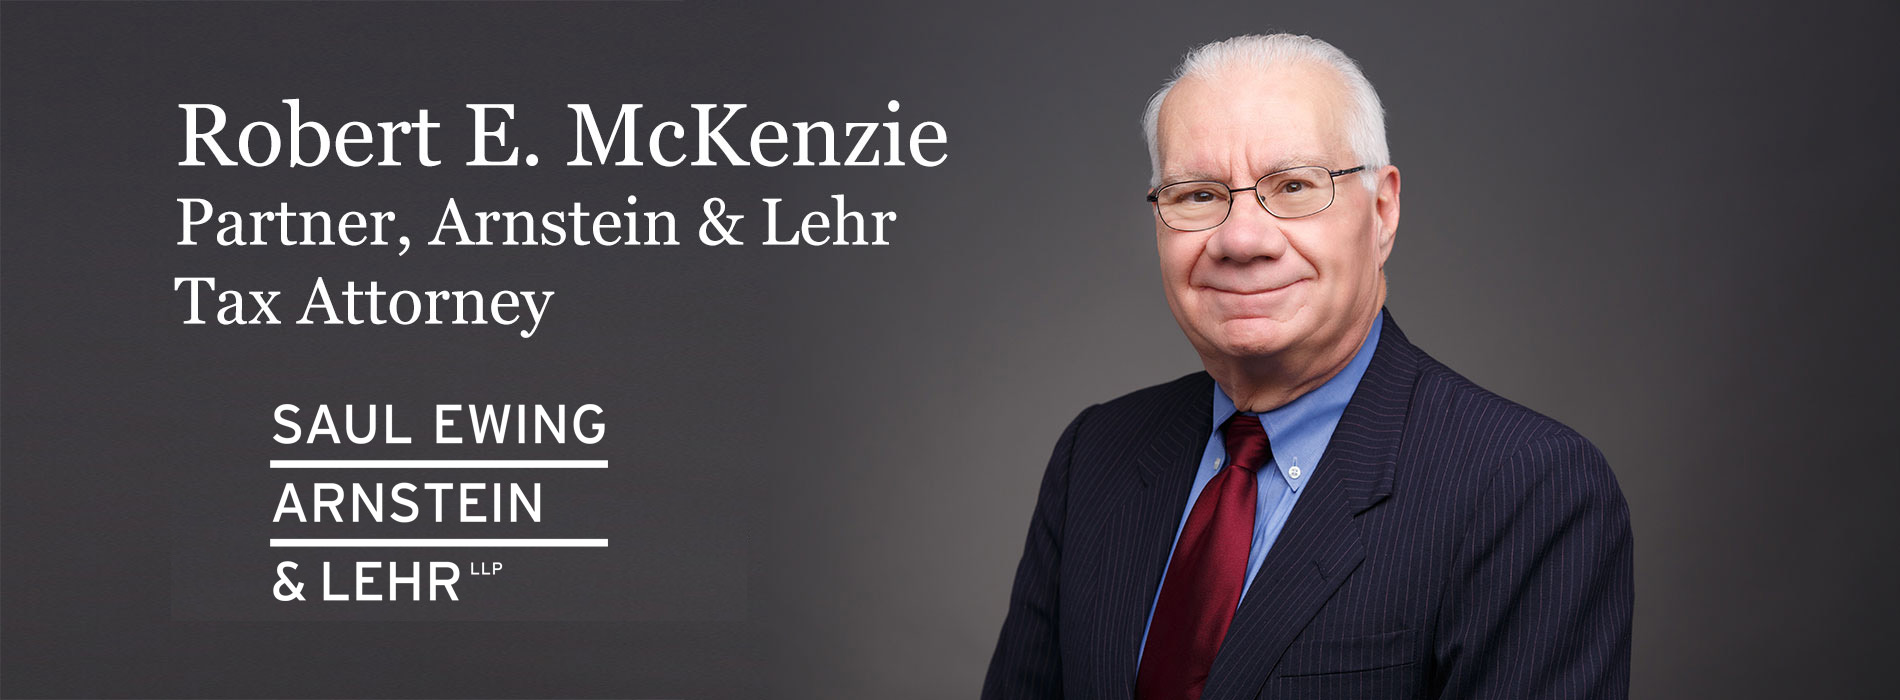 Robert E. McKenzie, Tax Attorney